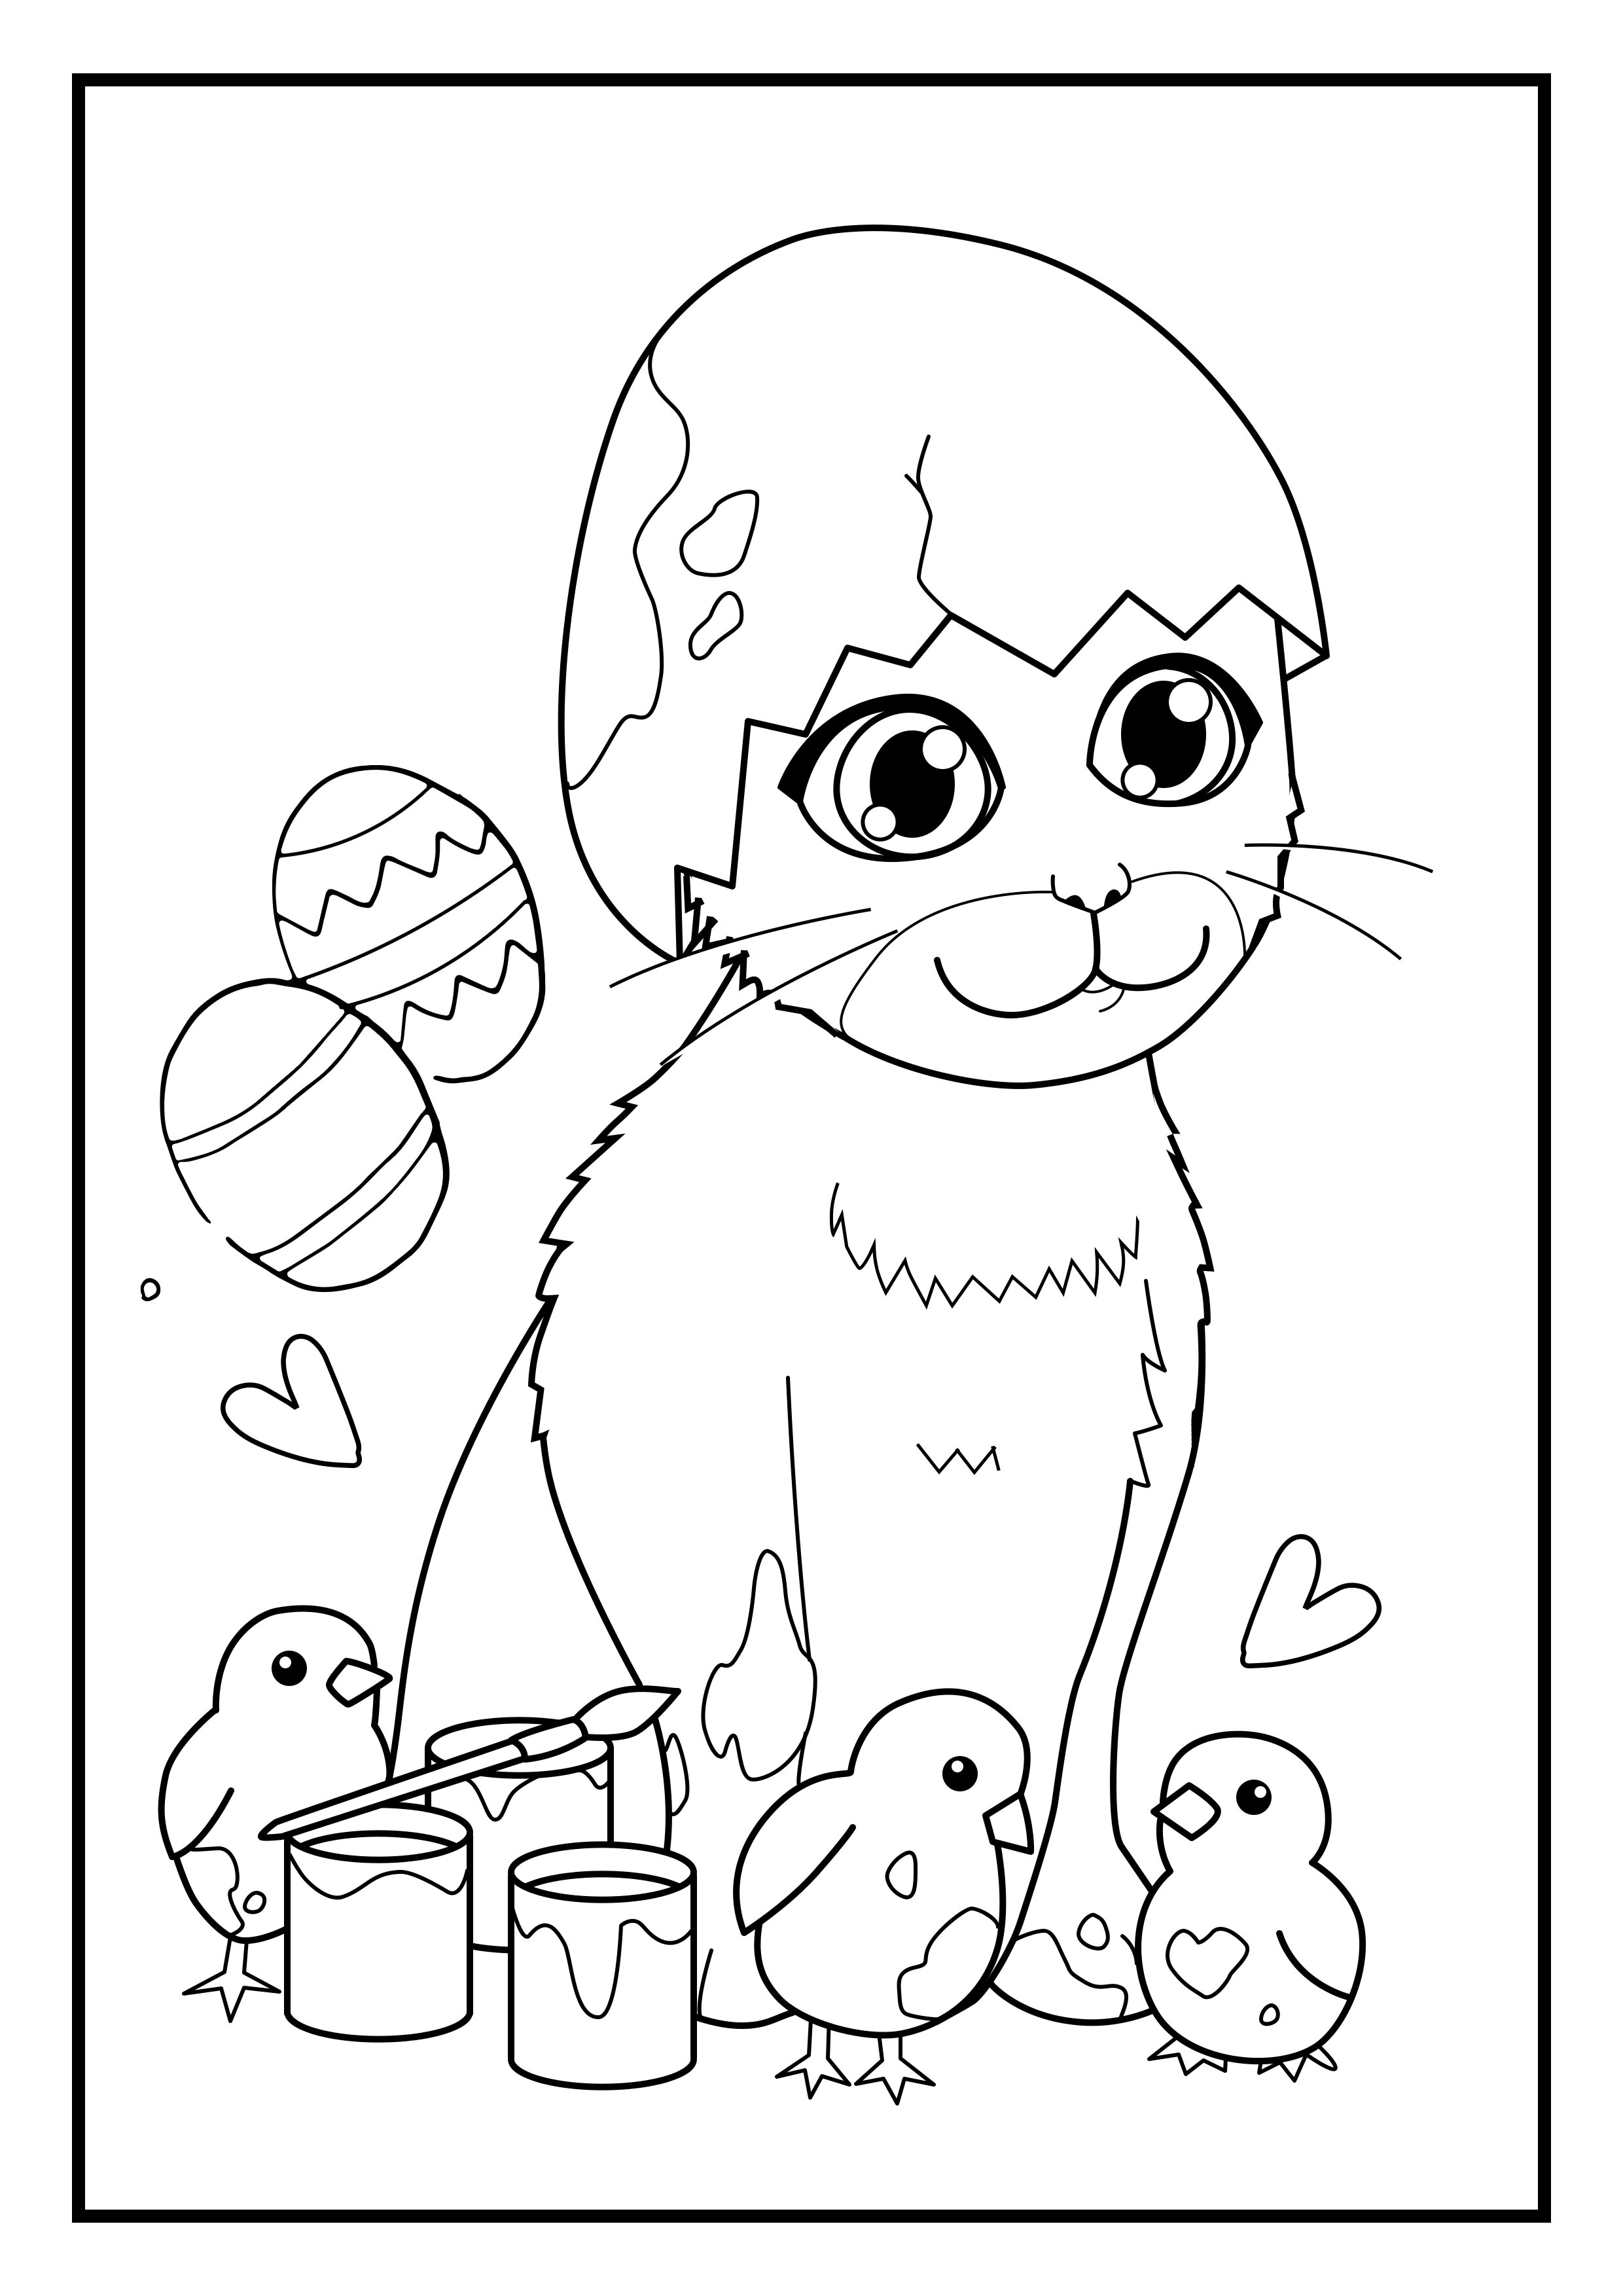 Over the hedge coloring pages on Coloring-Book.info | 3508x2480